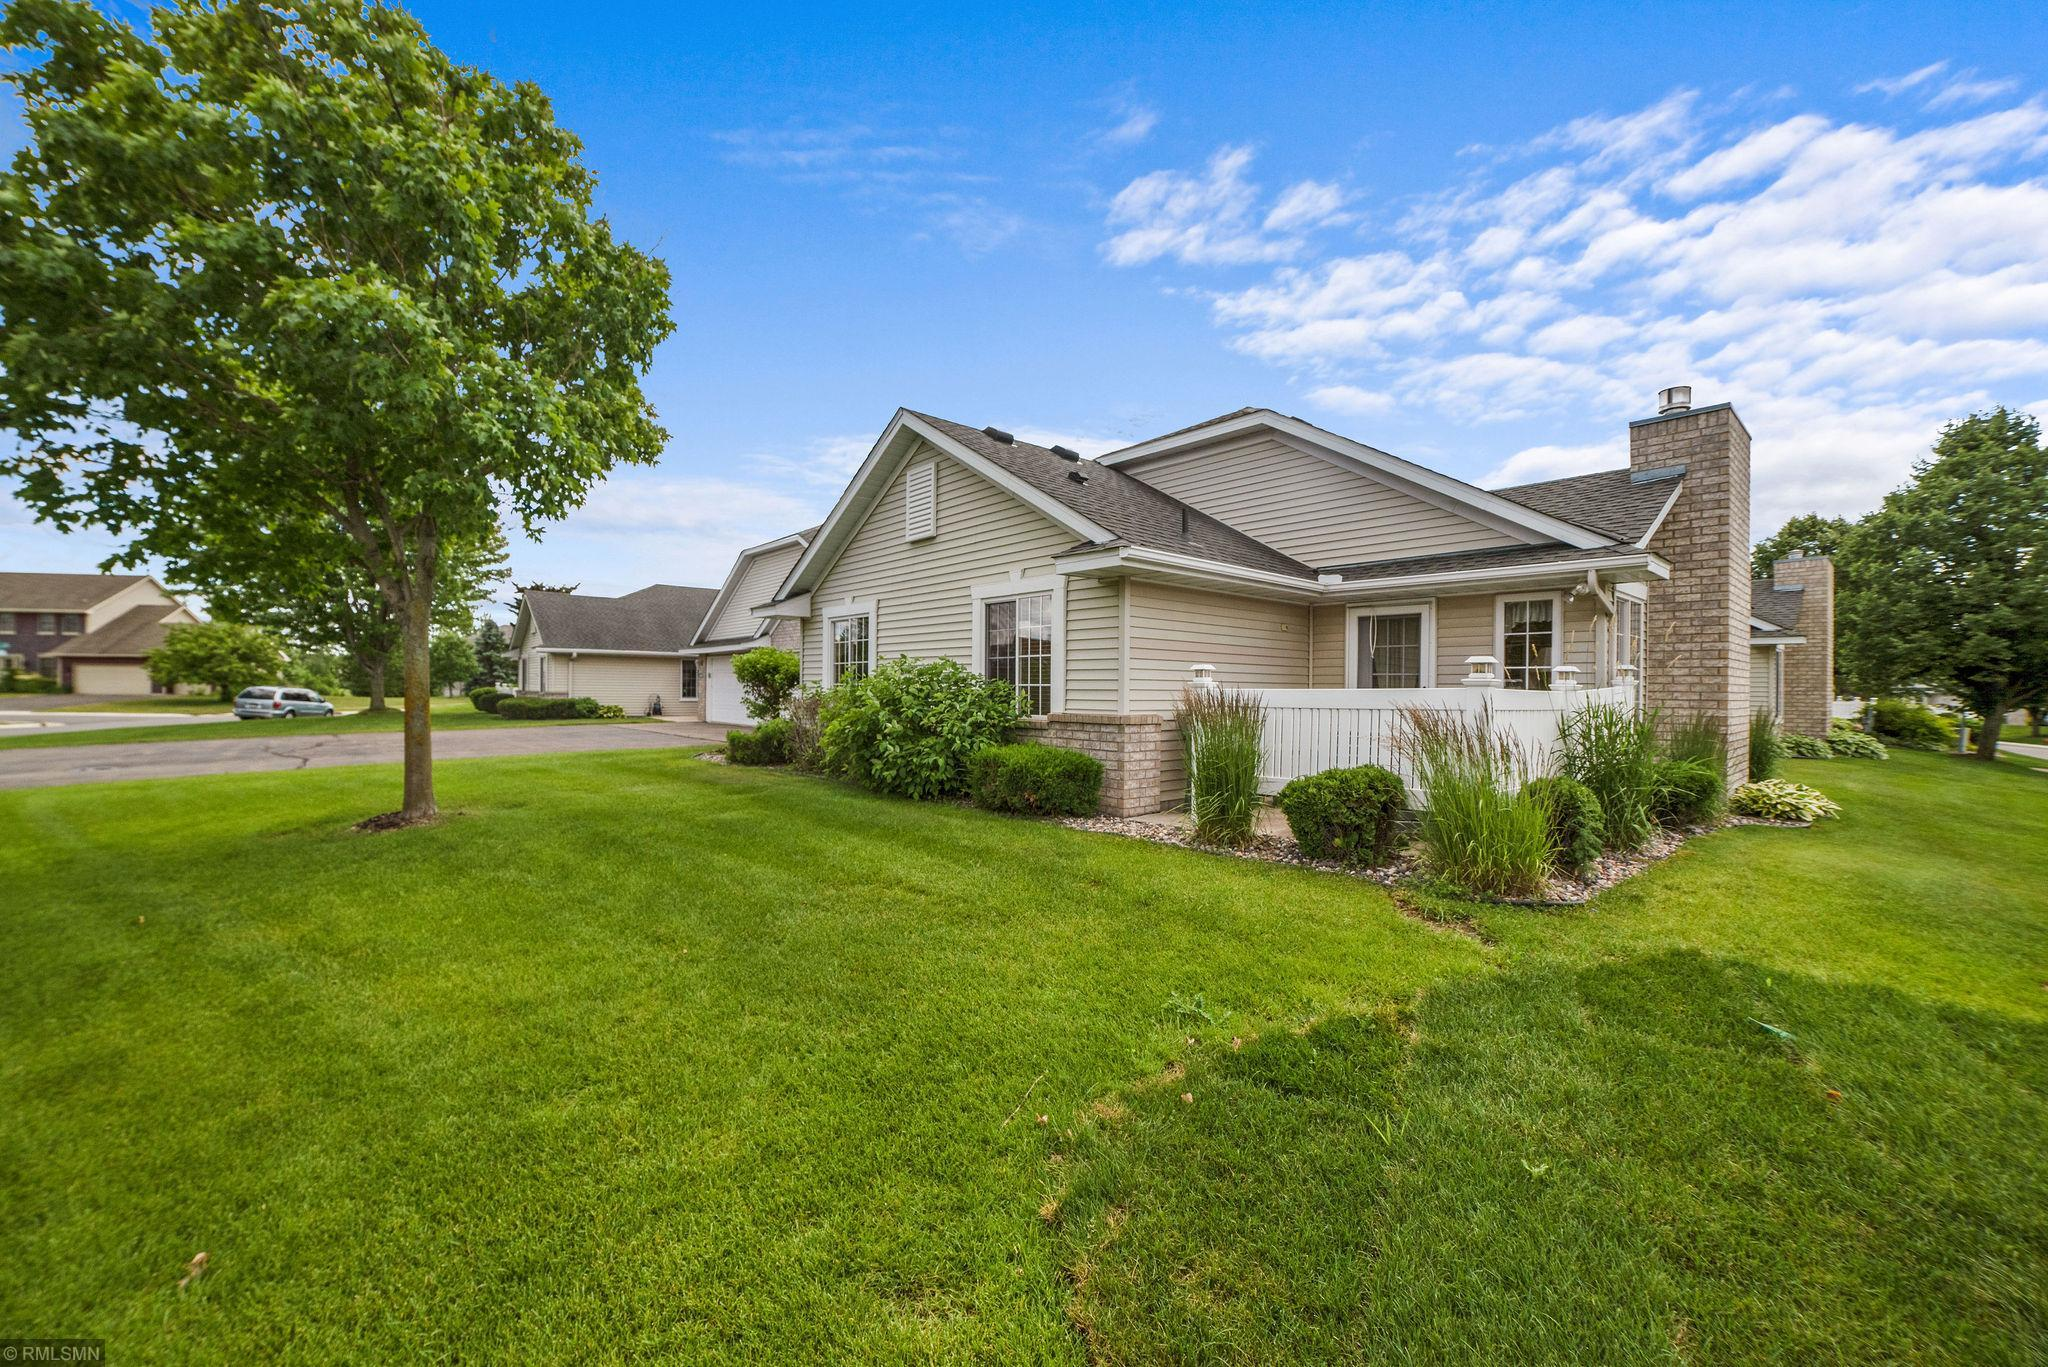 18474 Gladstone N Property Photo - Maple Grove, MN real estate listing